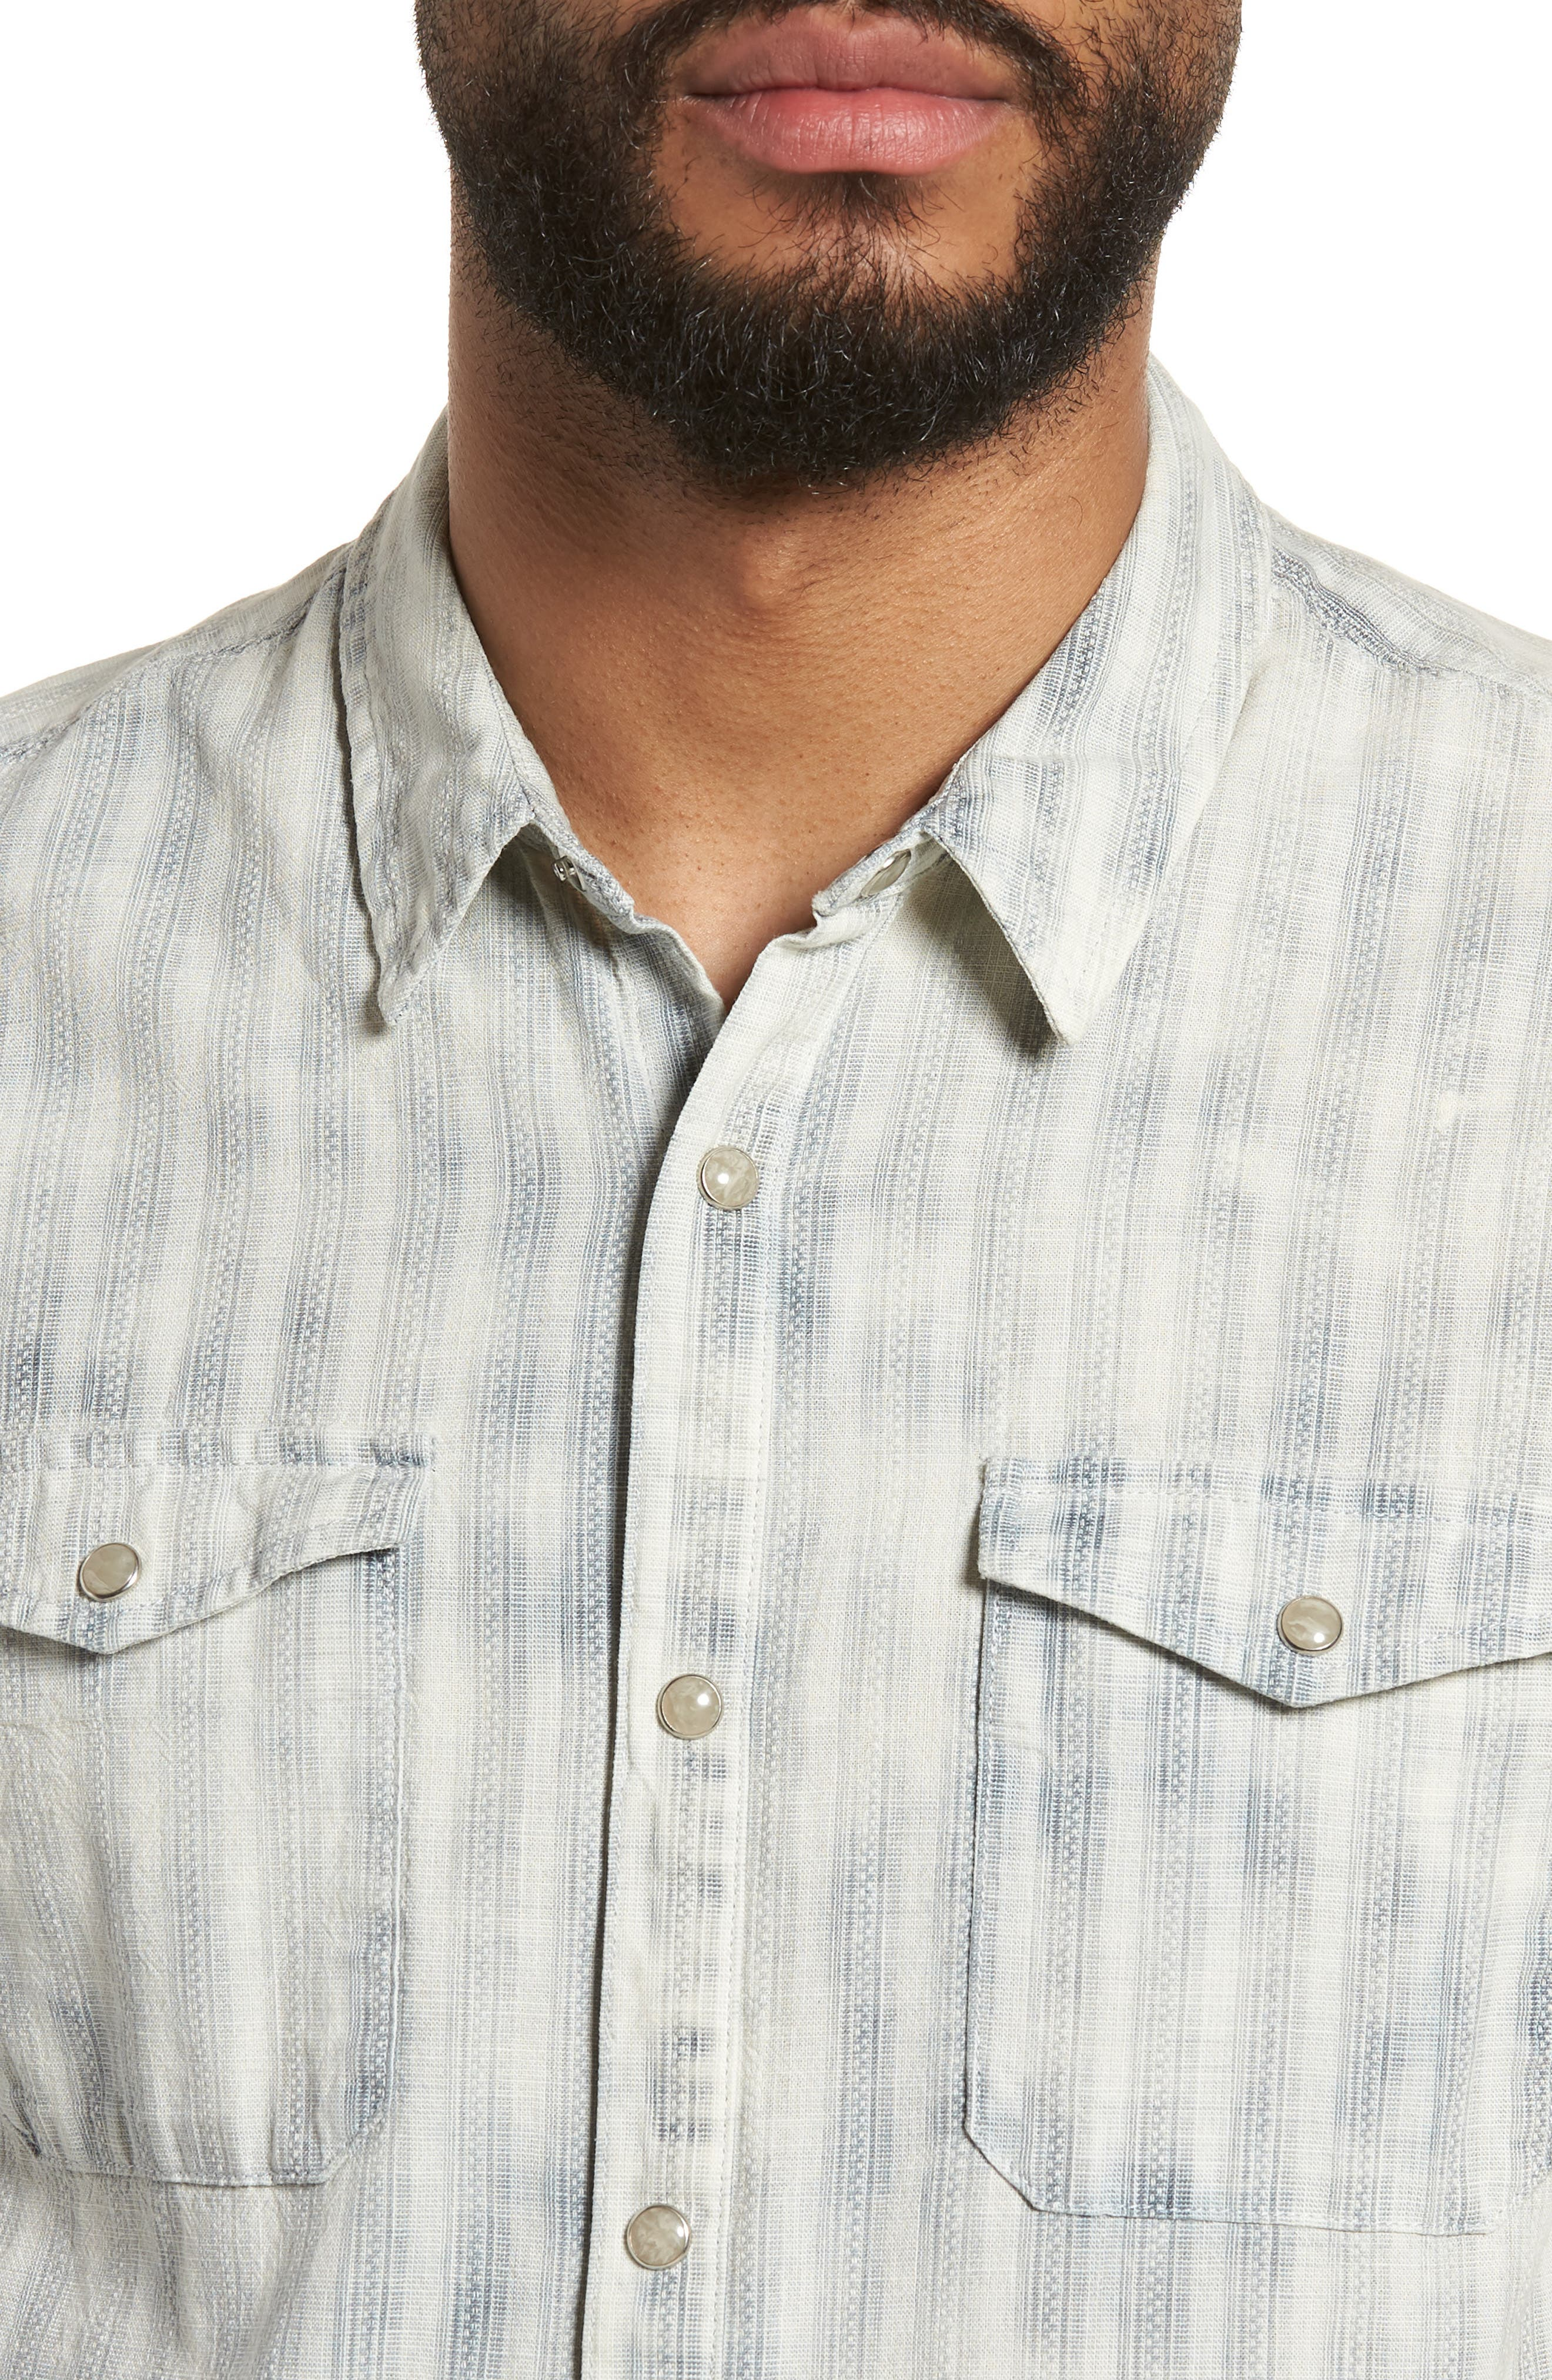 Extra Slim Fit Western Shirt,                             Alternate thumbnail 4, color,                             Reflection Grey